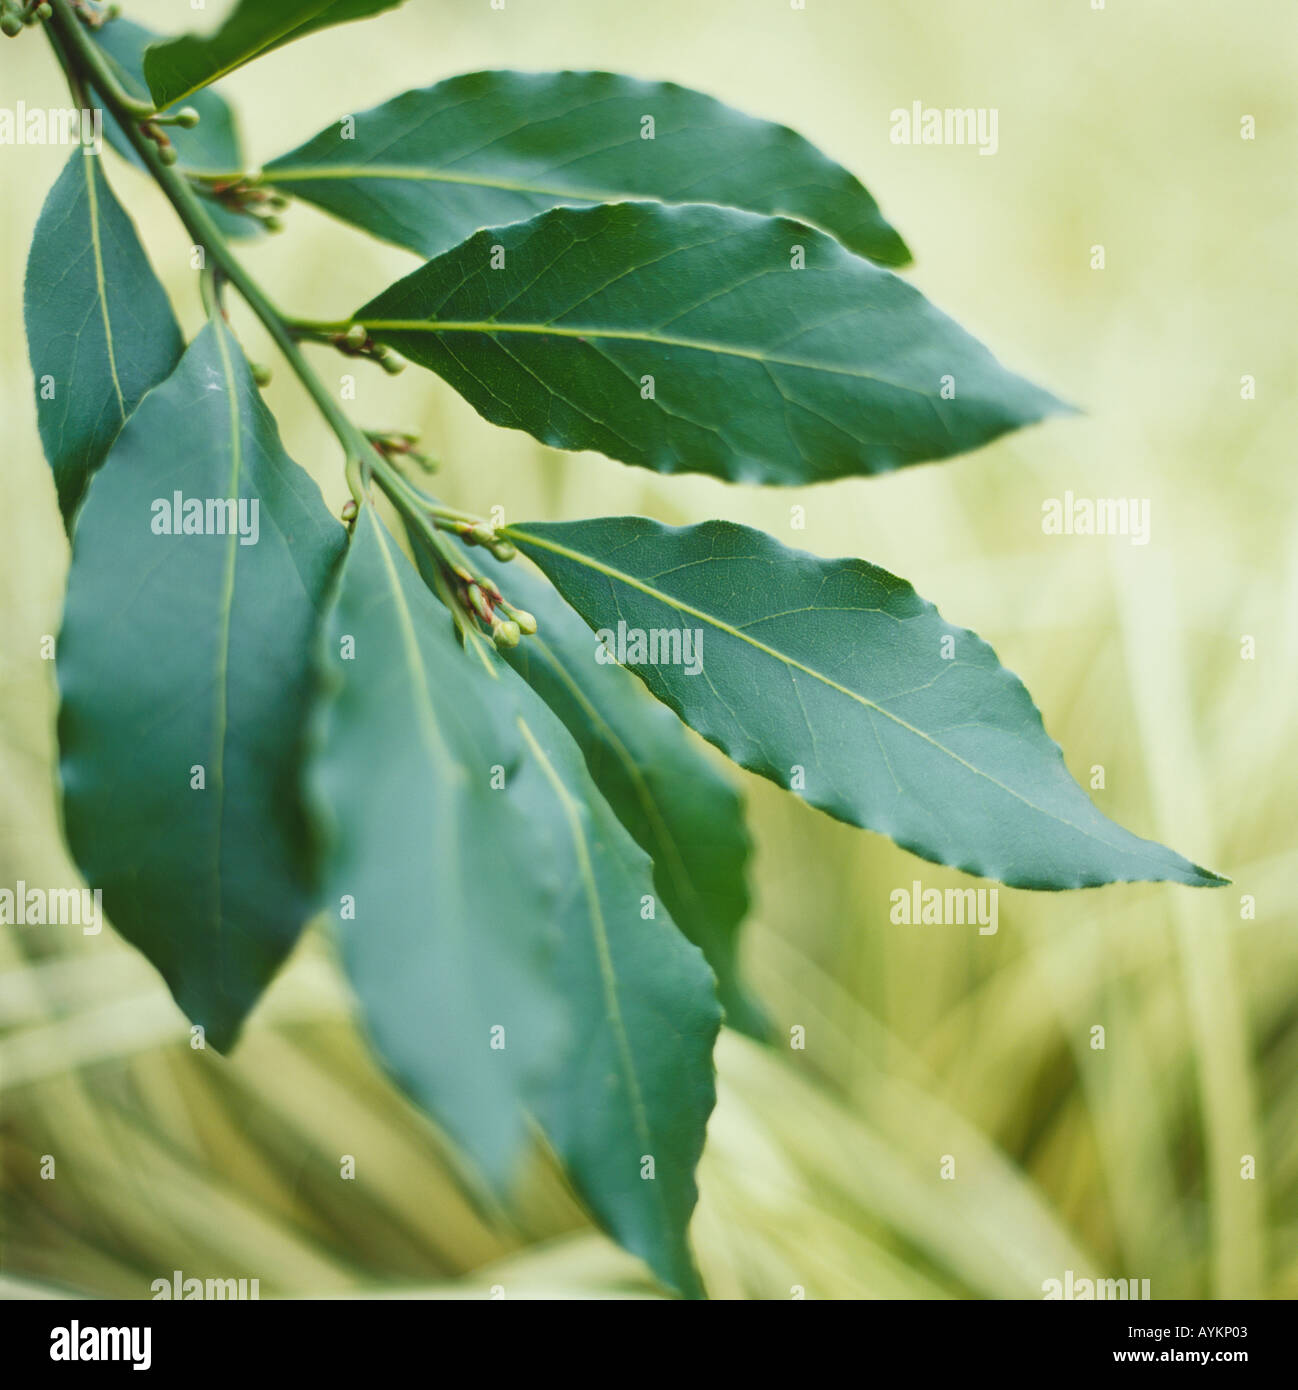 Laurus nobilis f. angustifolia, willow Leaf Bay, pointed oval dark green leaves with shiny upper surface, Stock Photo